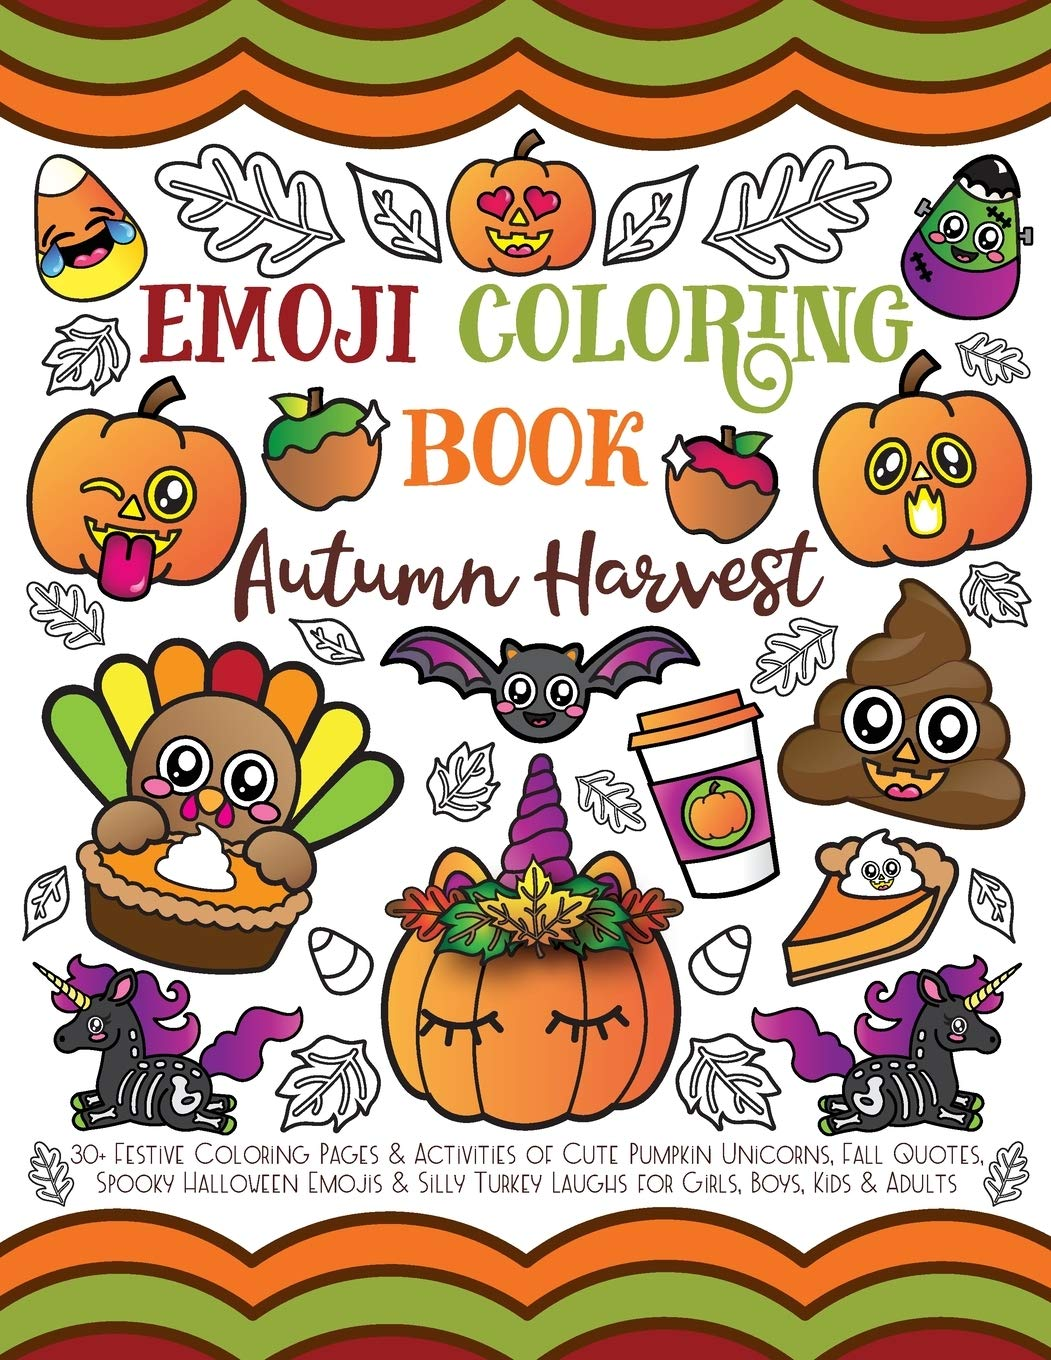 Amazon Com Emoji Coloring Book Autumn Harvest 30 Festive Coloring Pages Activities Of Cute Pumpkin Unicorns Fall Quotes Spooky Halloween Emojis Silly Turkey Laughs For Girls Boys Kids Adults 9781643400082